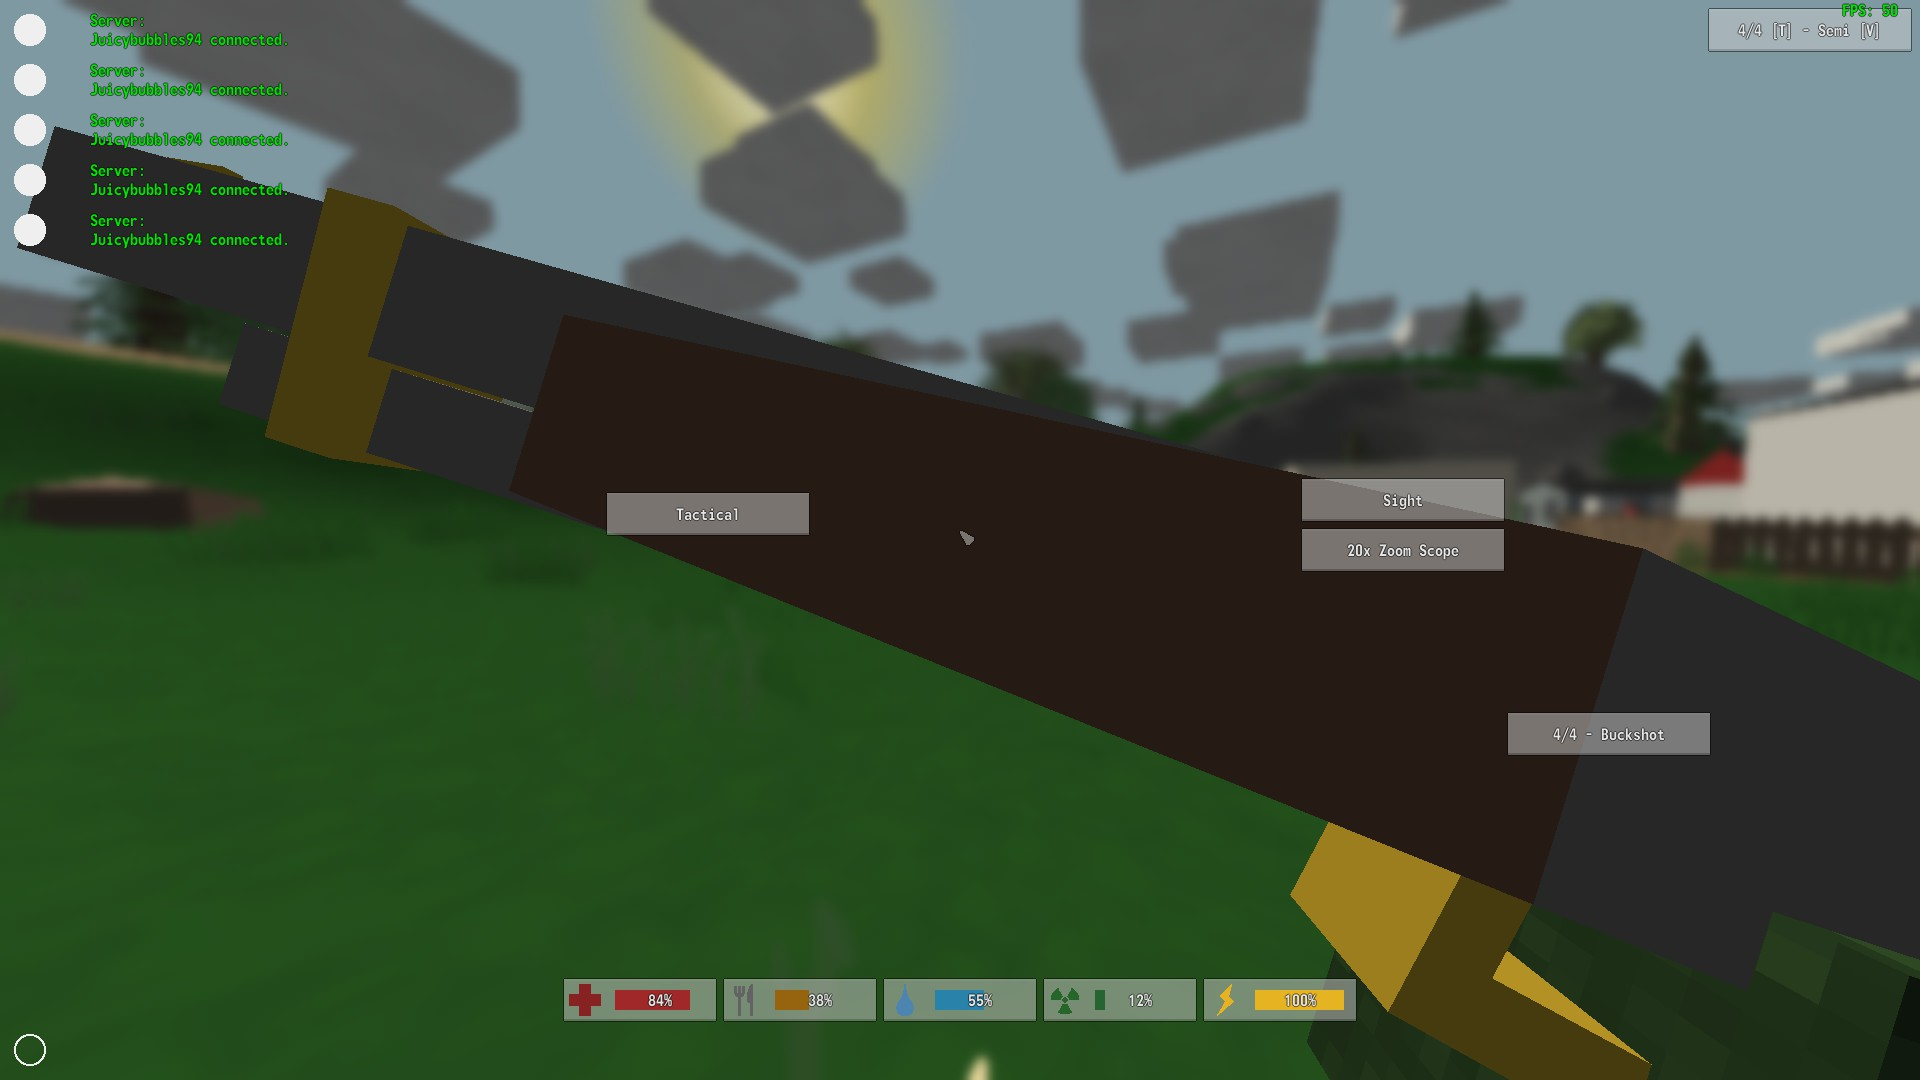 Image - Unturned2 Lever Action (attachment view).jpg Unturned Bunker Wiki Fandom powered by Wikia